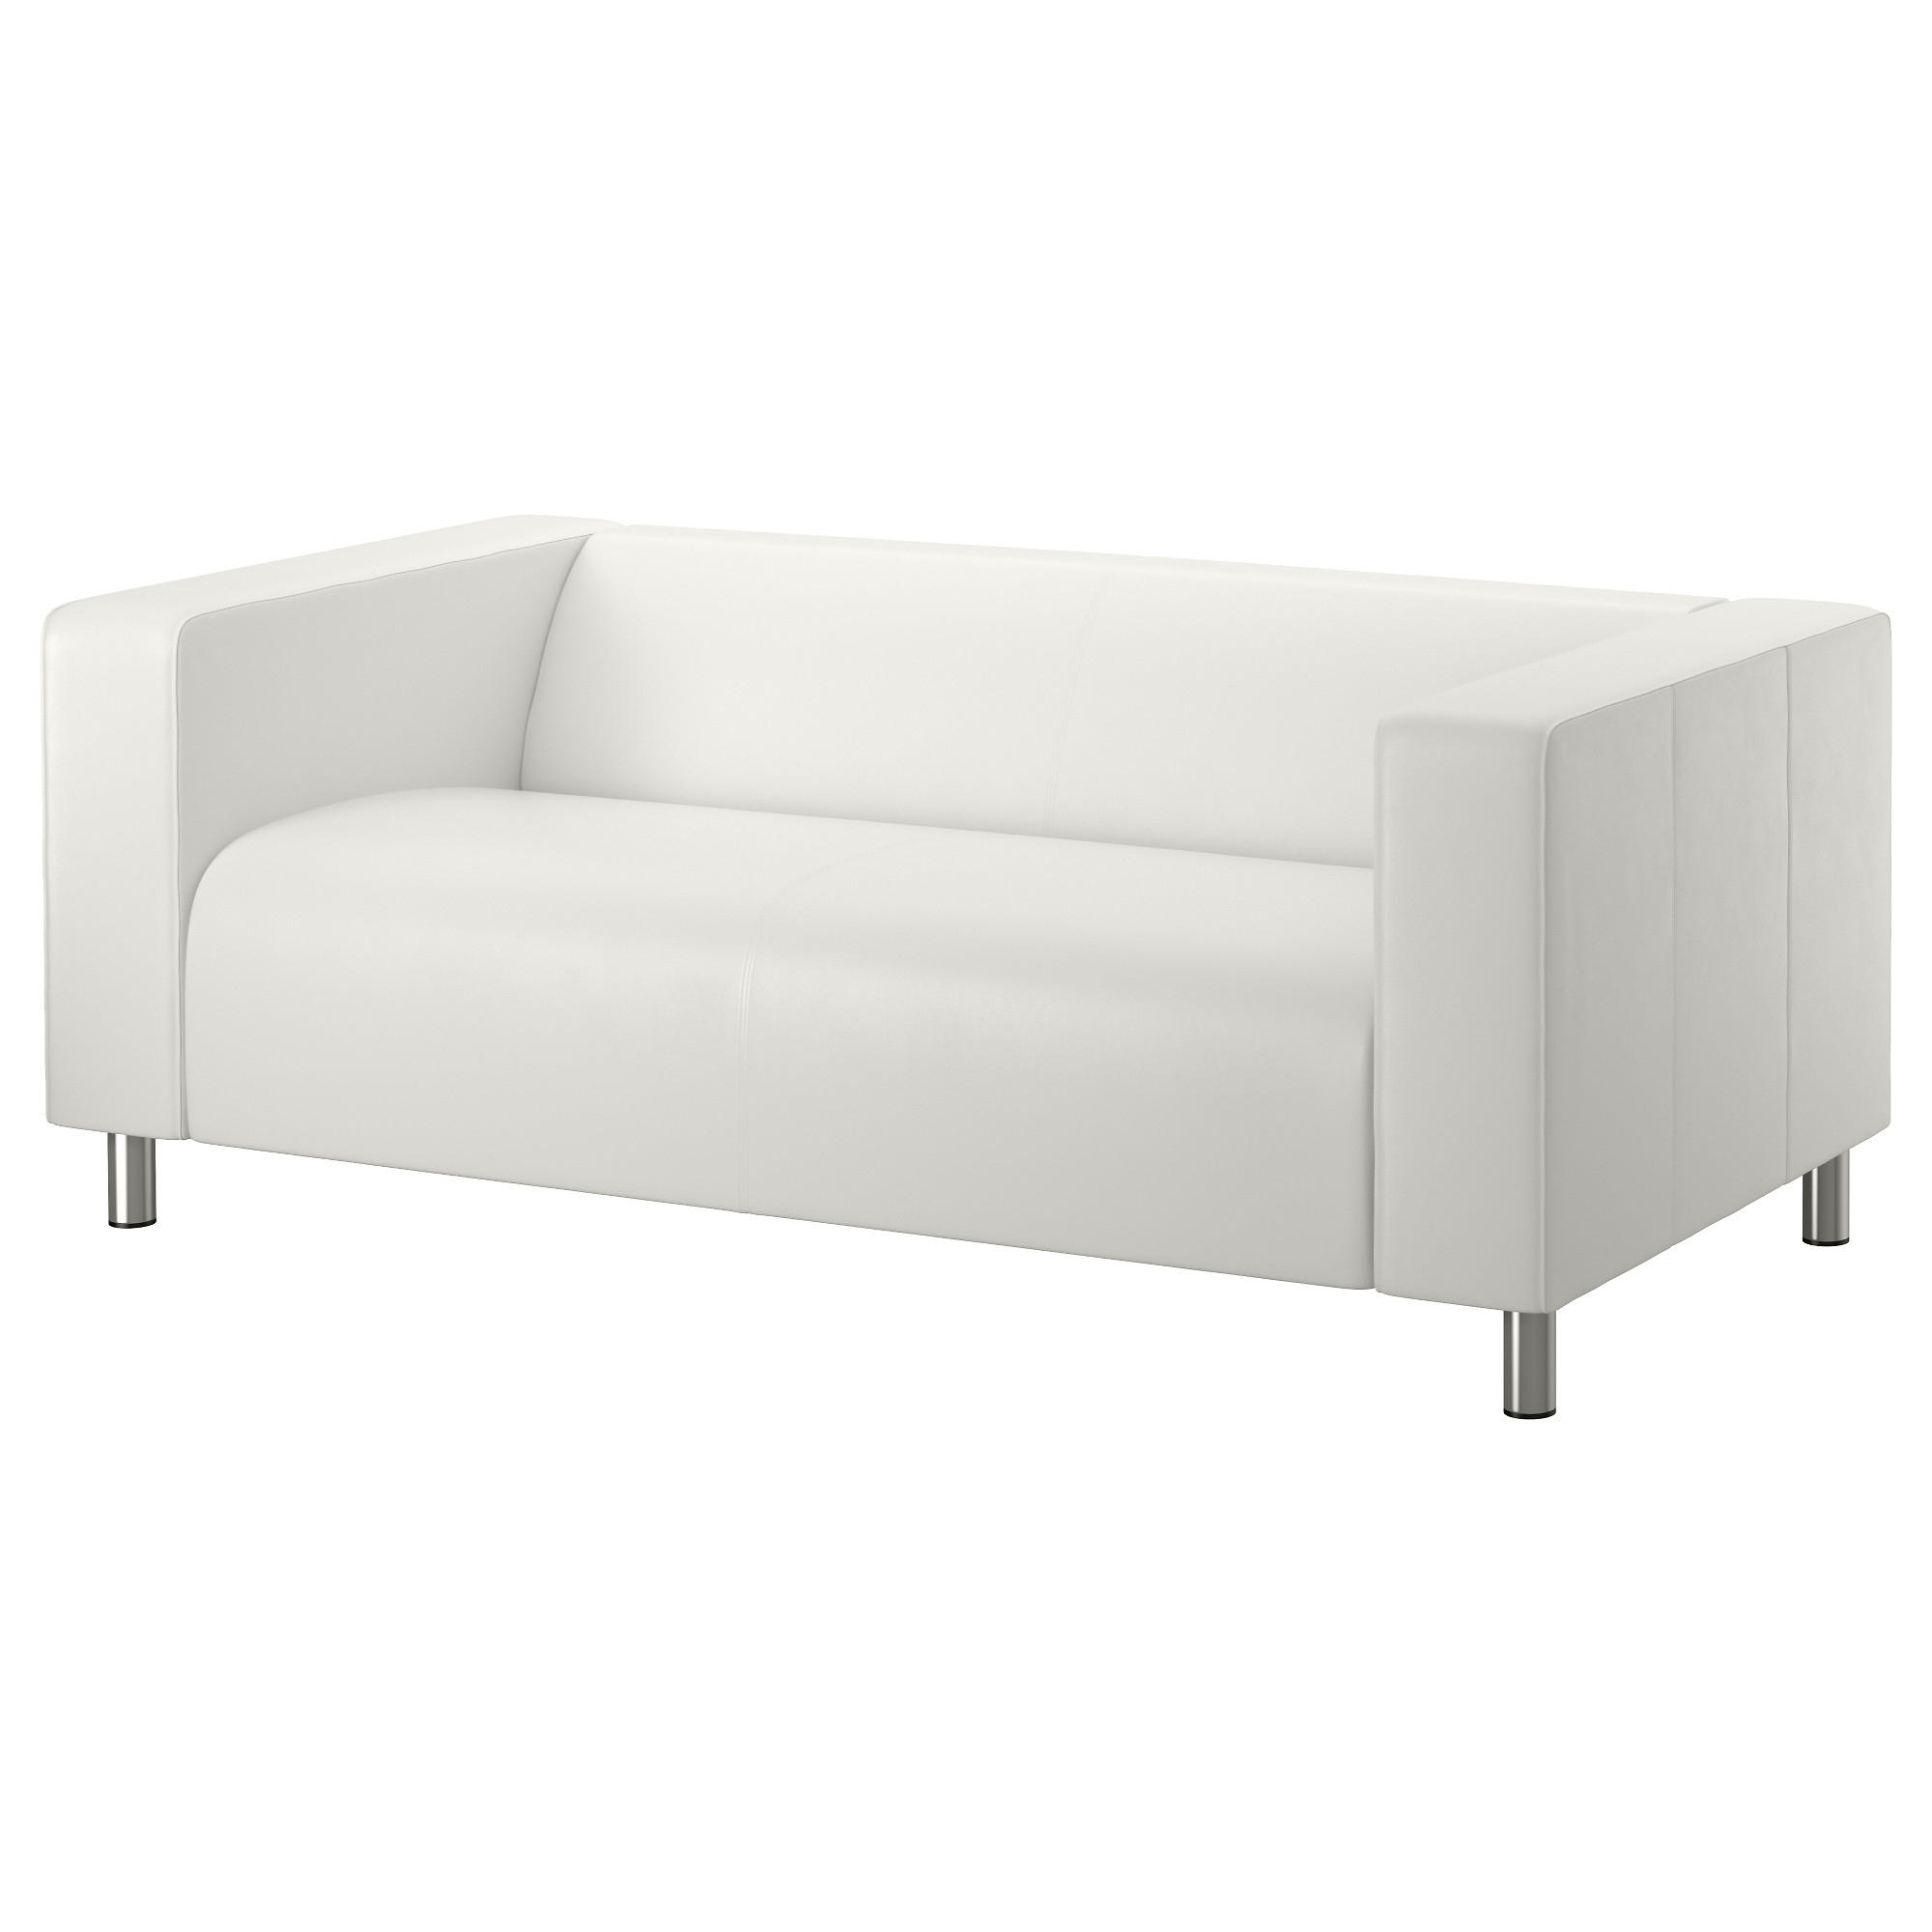 Leather Faux Leather Couches Chairs Ottomans Ikea In White Sofa Chairs (Image 9 of 15)